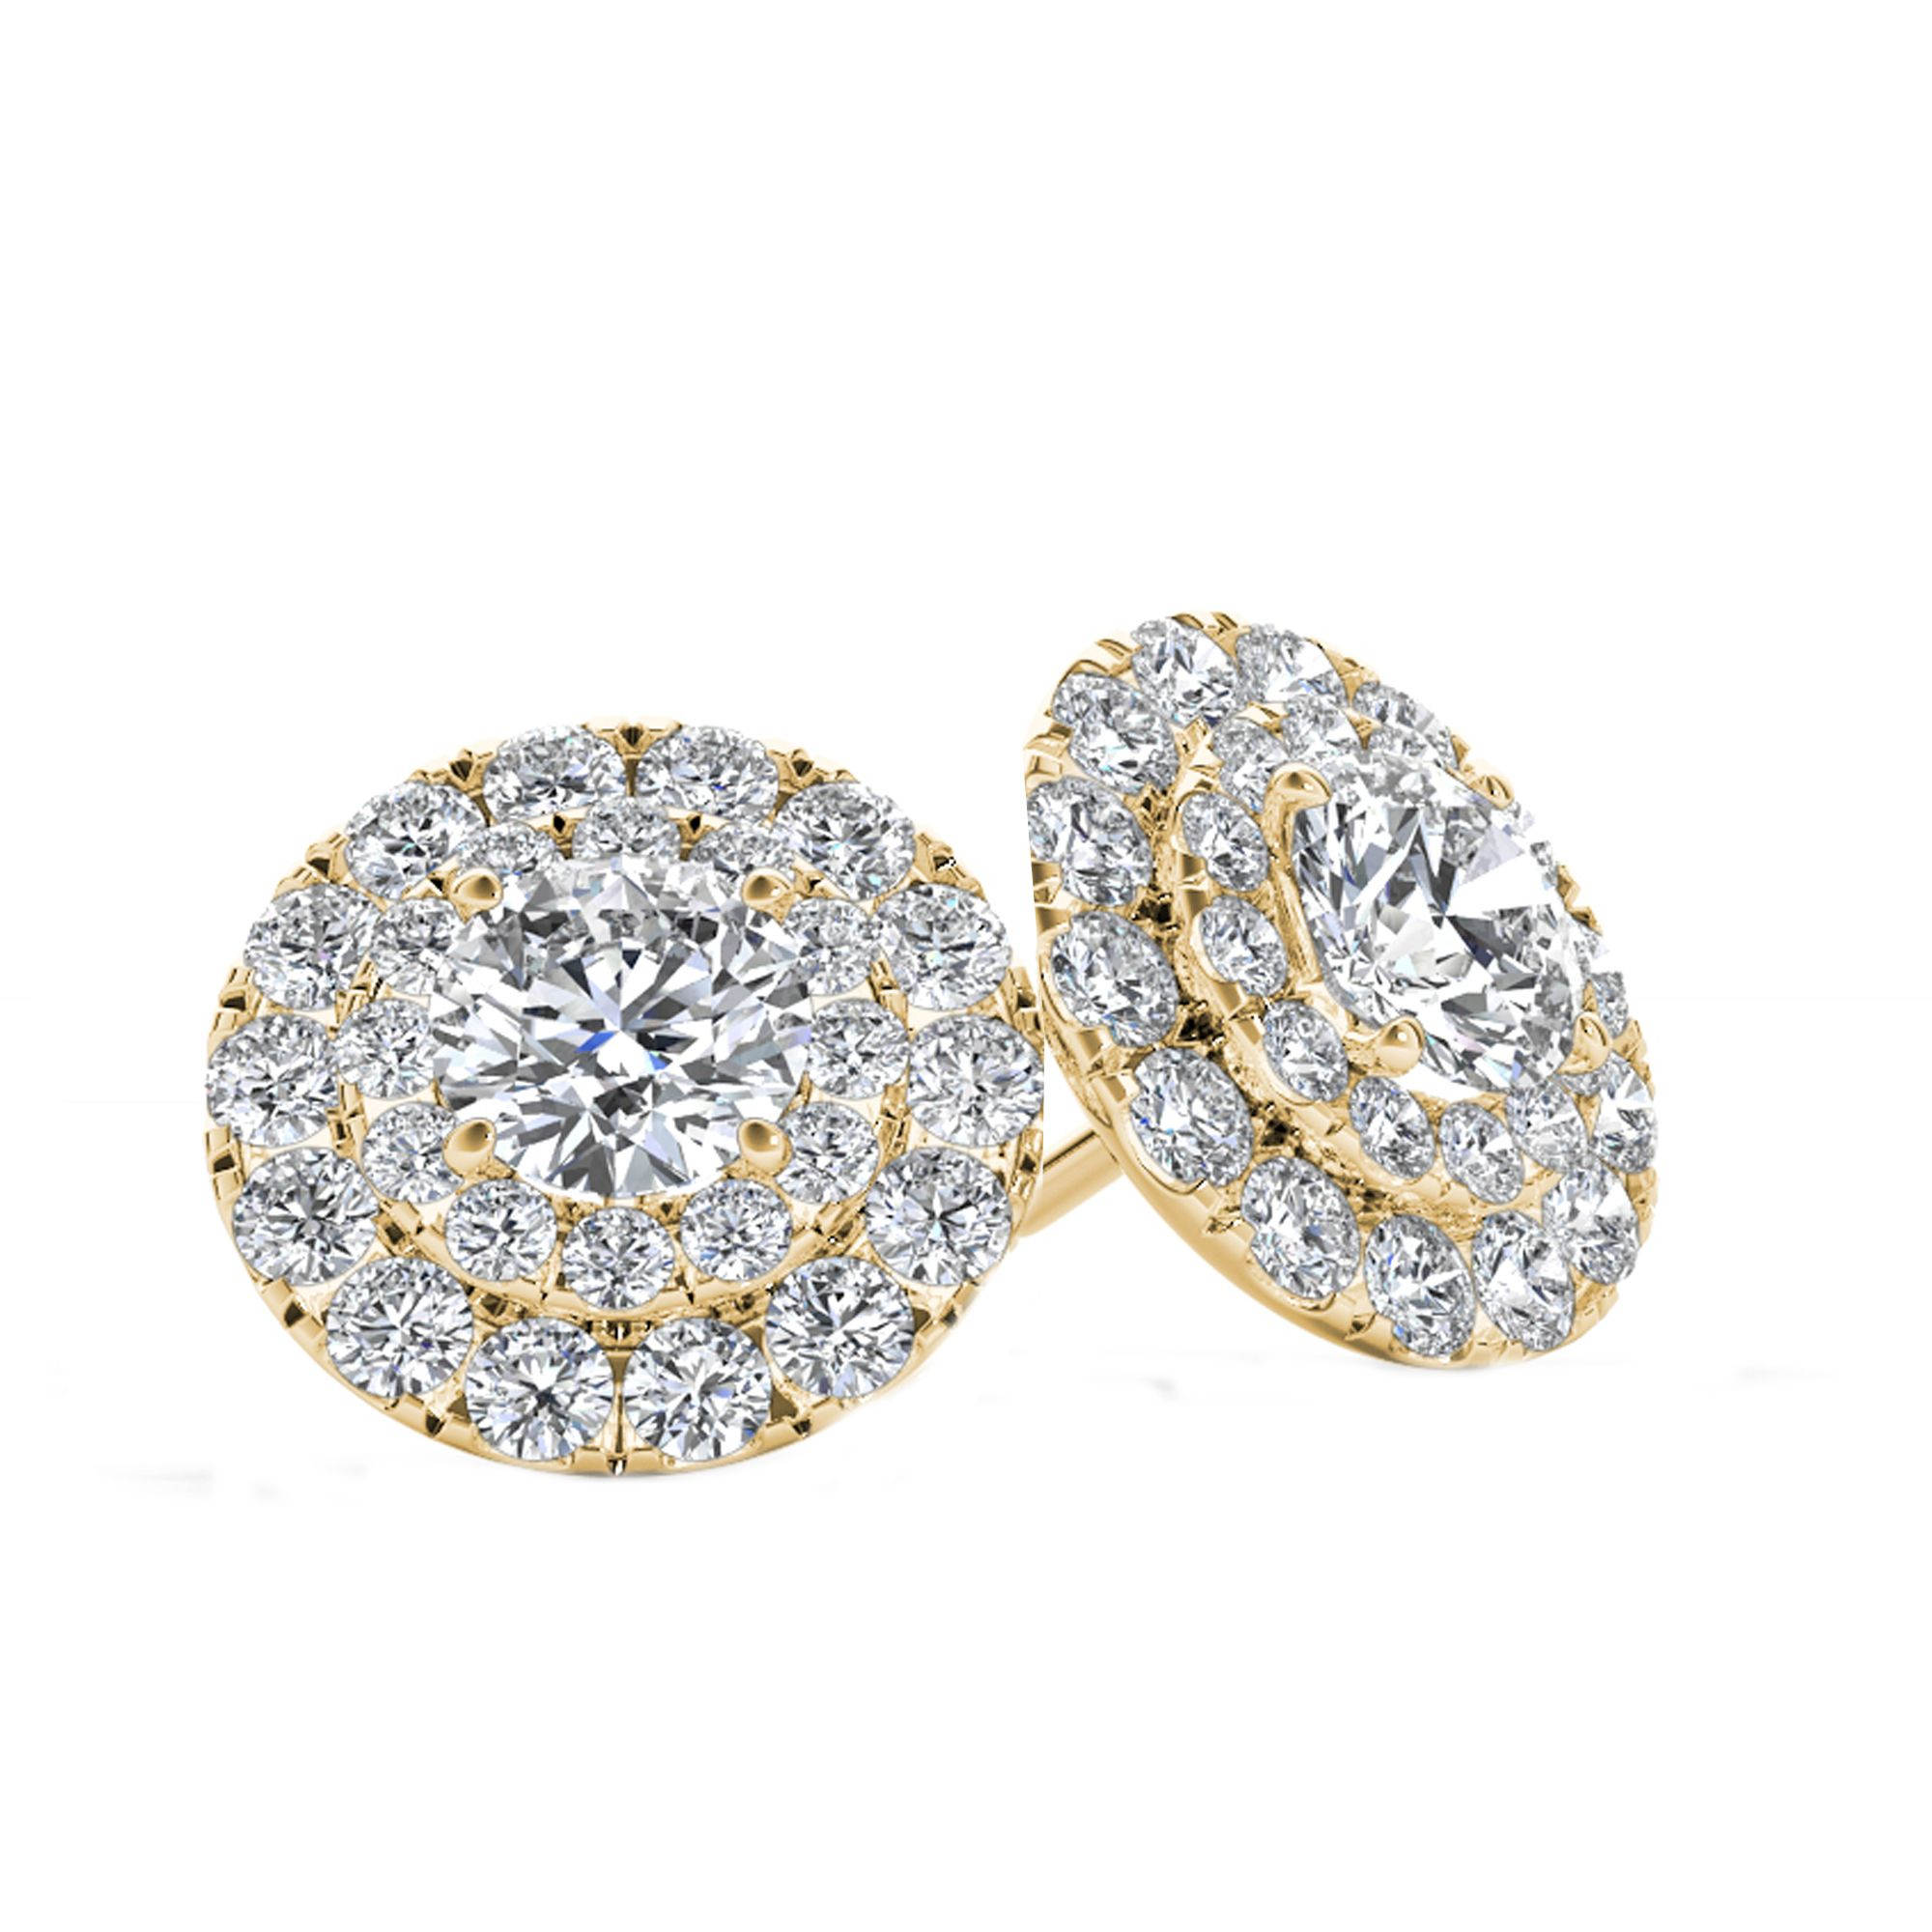 white castle en brilliants of orogem gold a with product in diamond halo mini earrings setting small solitaire